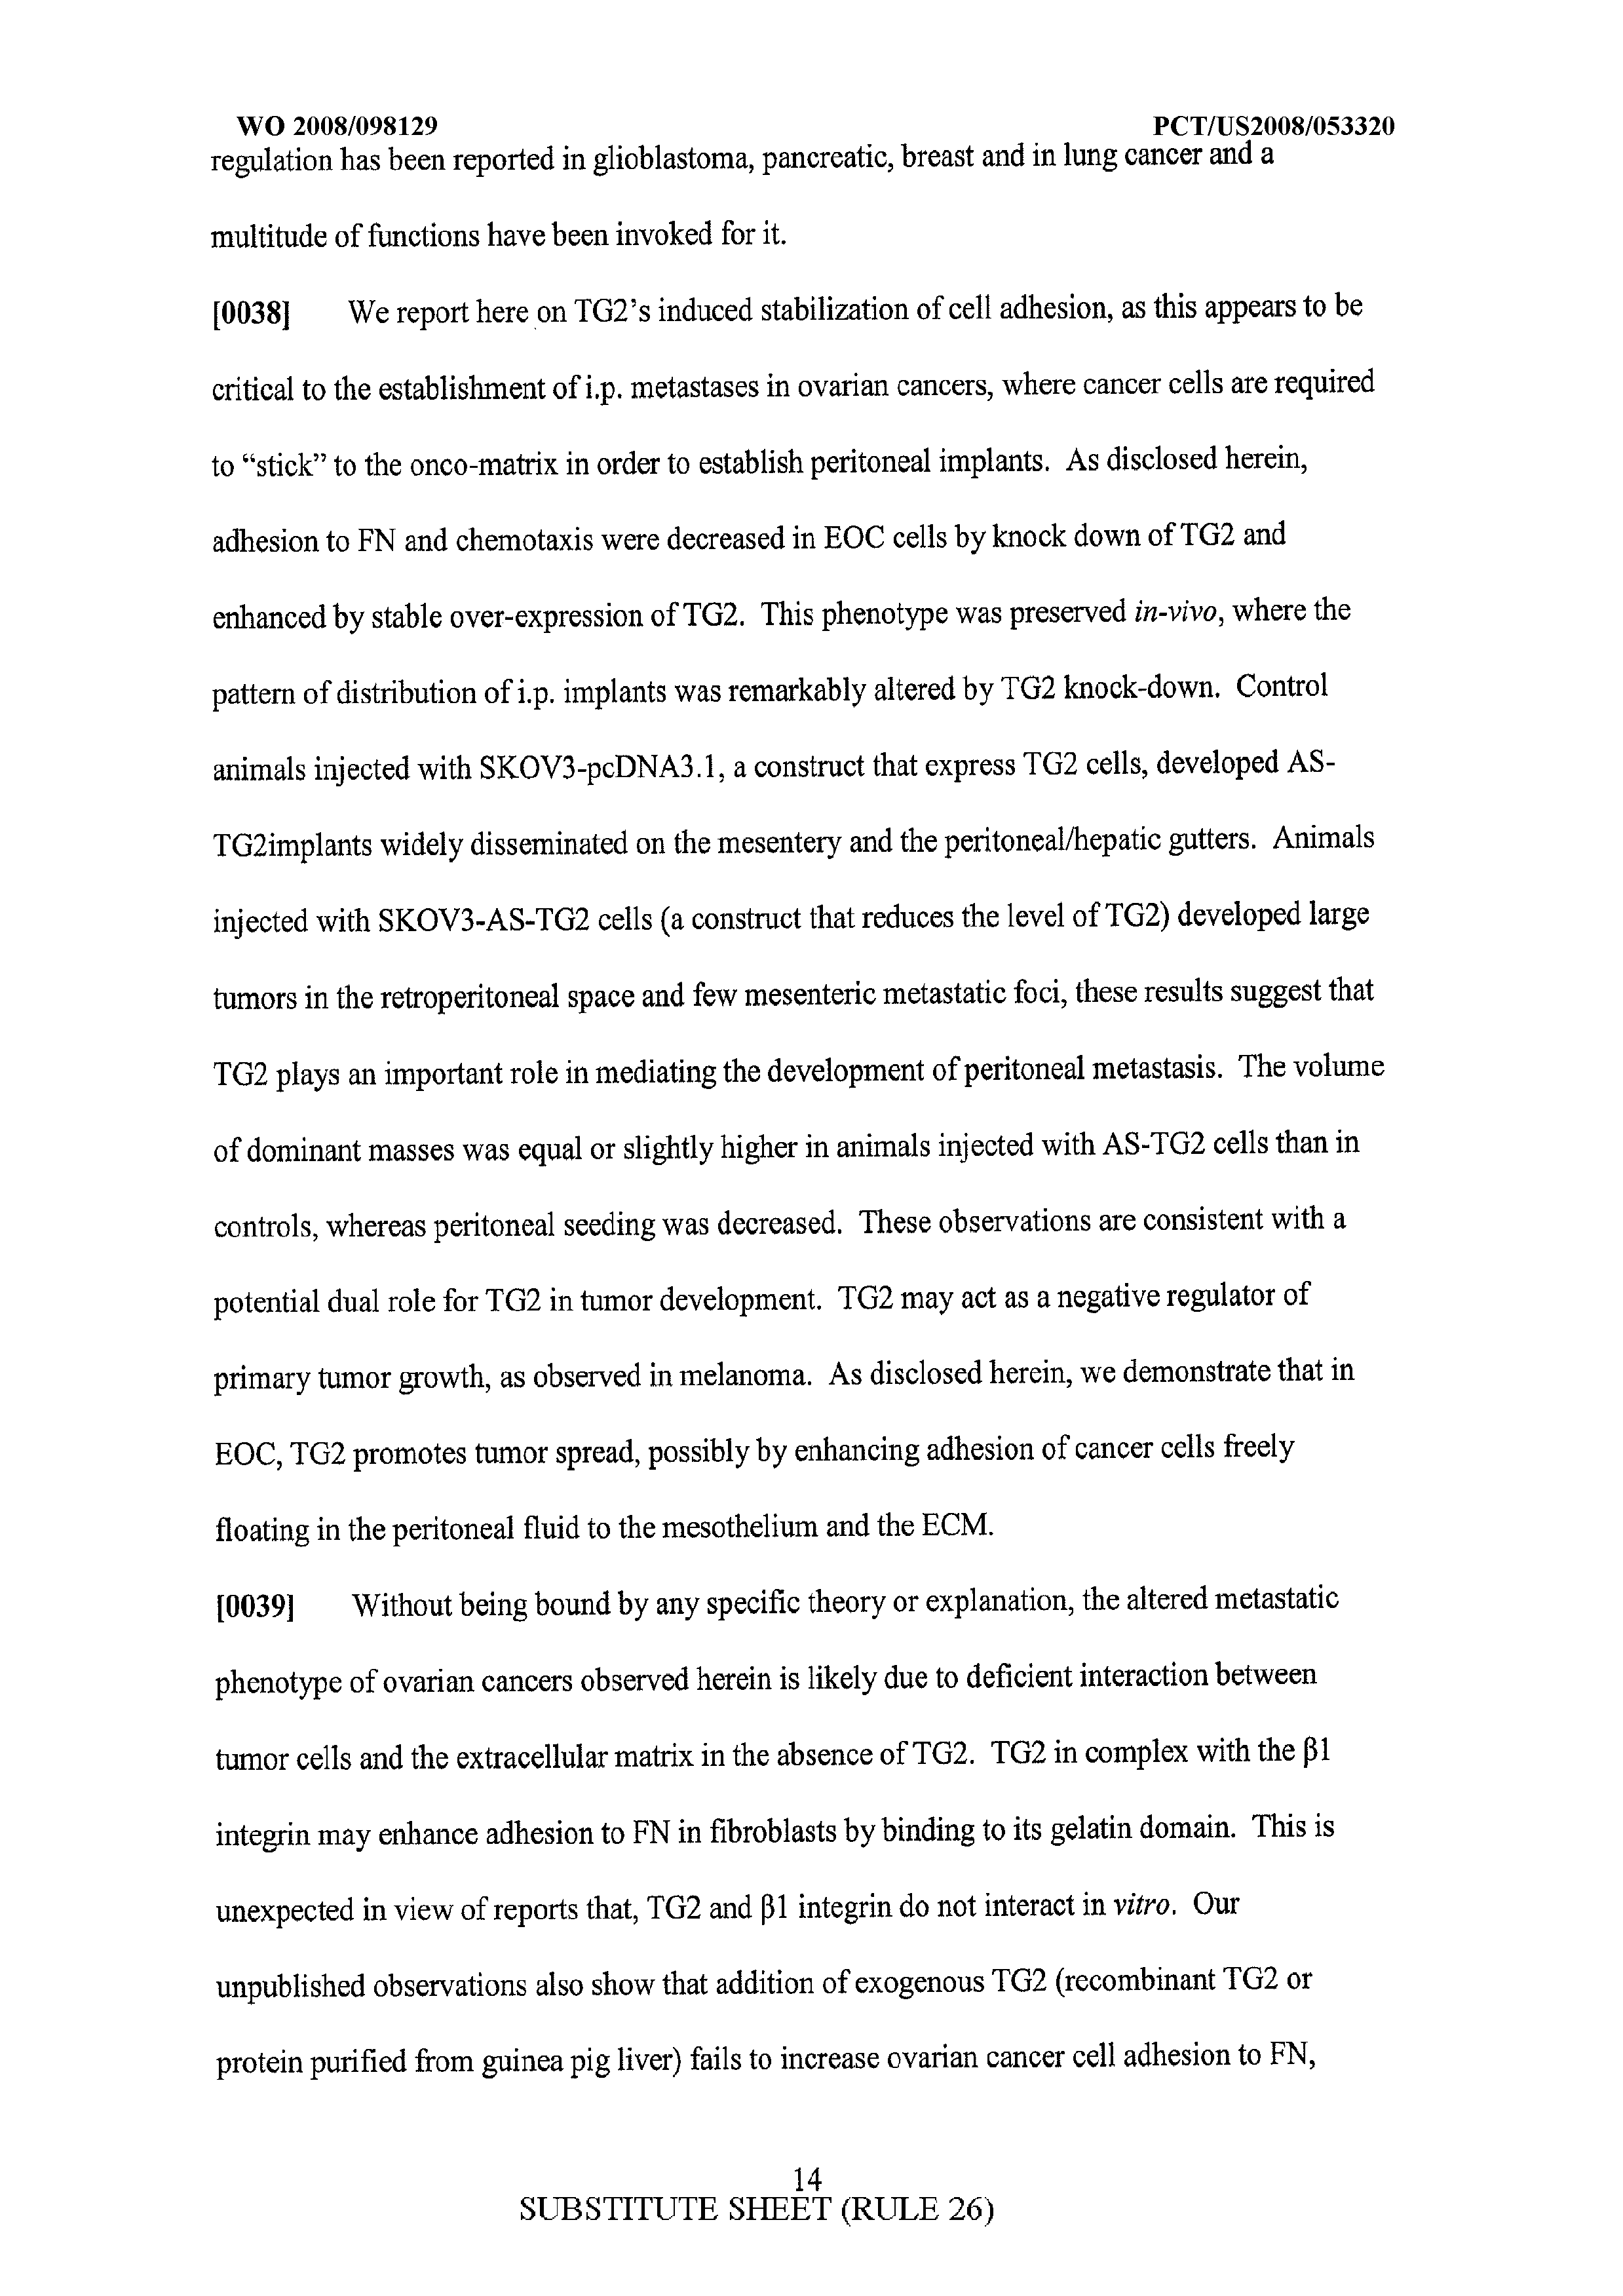 WO 2008/098129 A2 - Materials And Methods For Detecting And